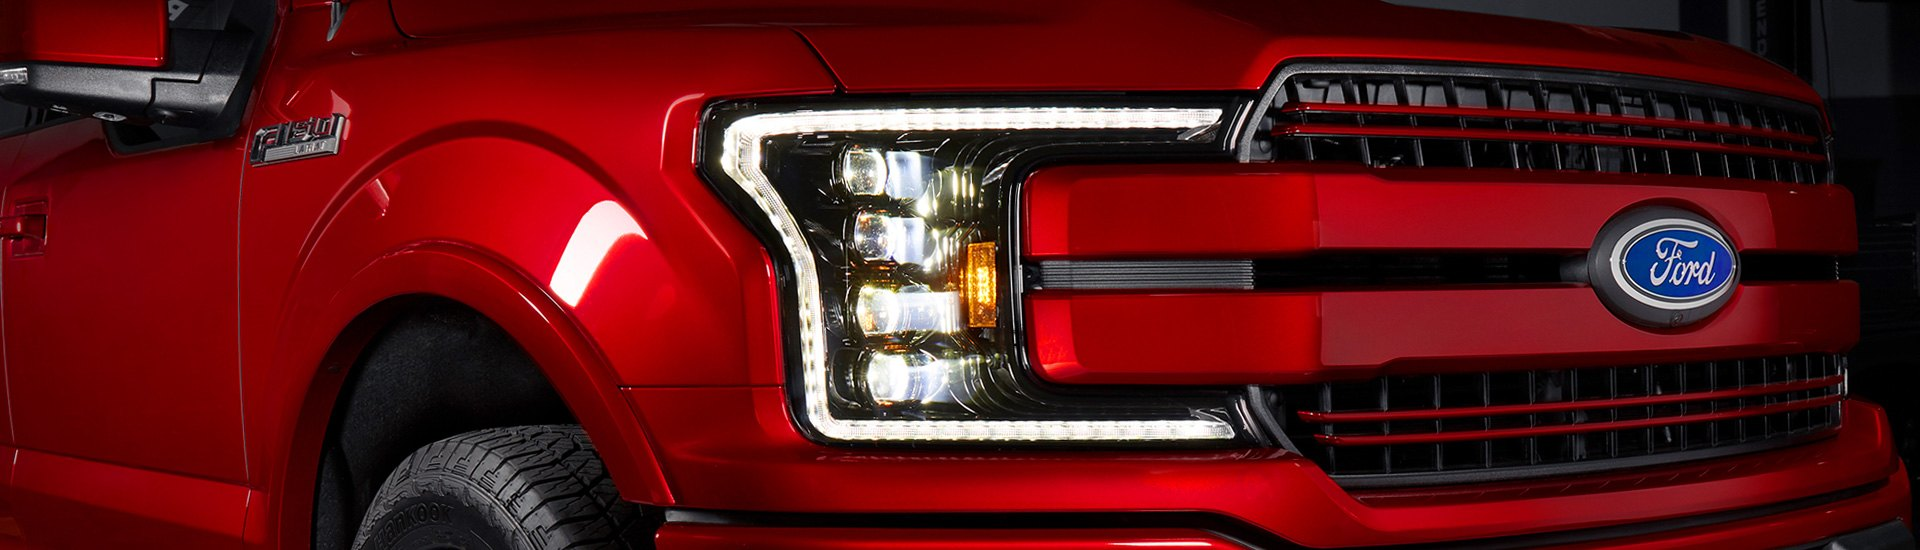 morimoto ford f 150 led headlights review. Black Bedroom Furniture Sets. Home Design Ideas